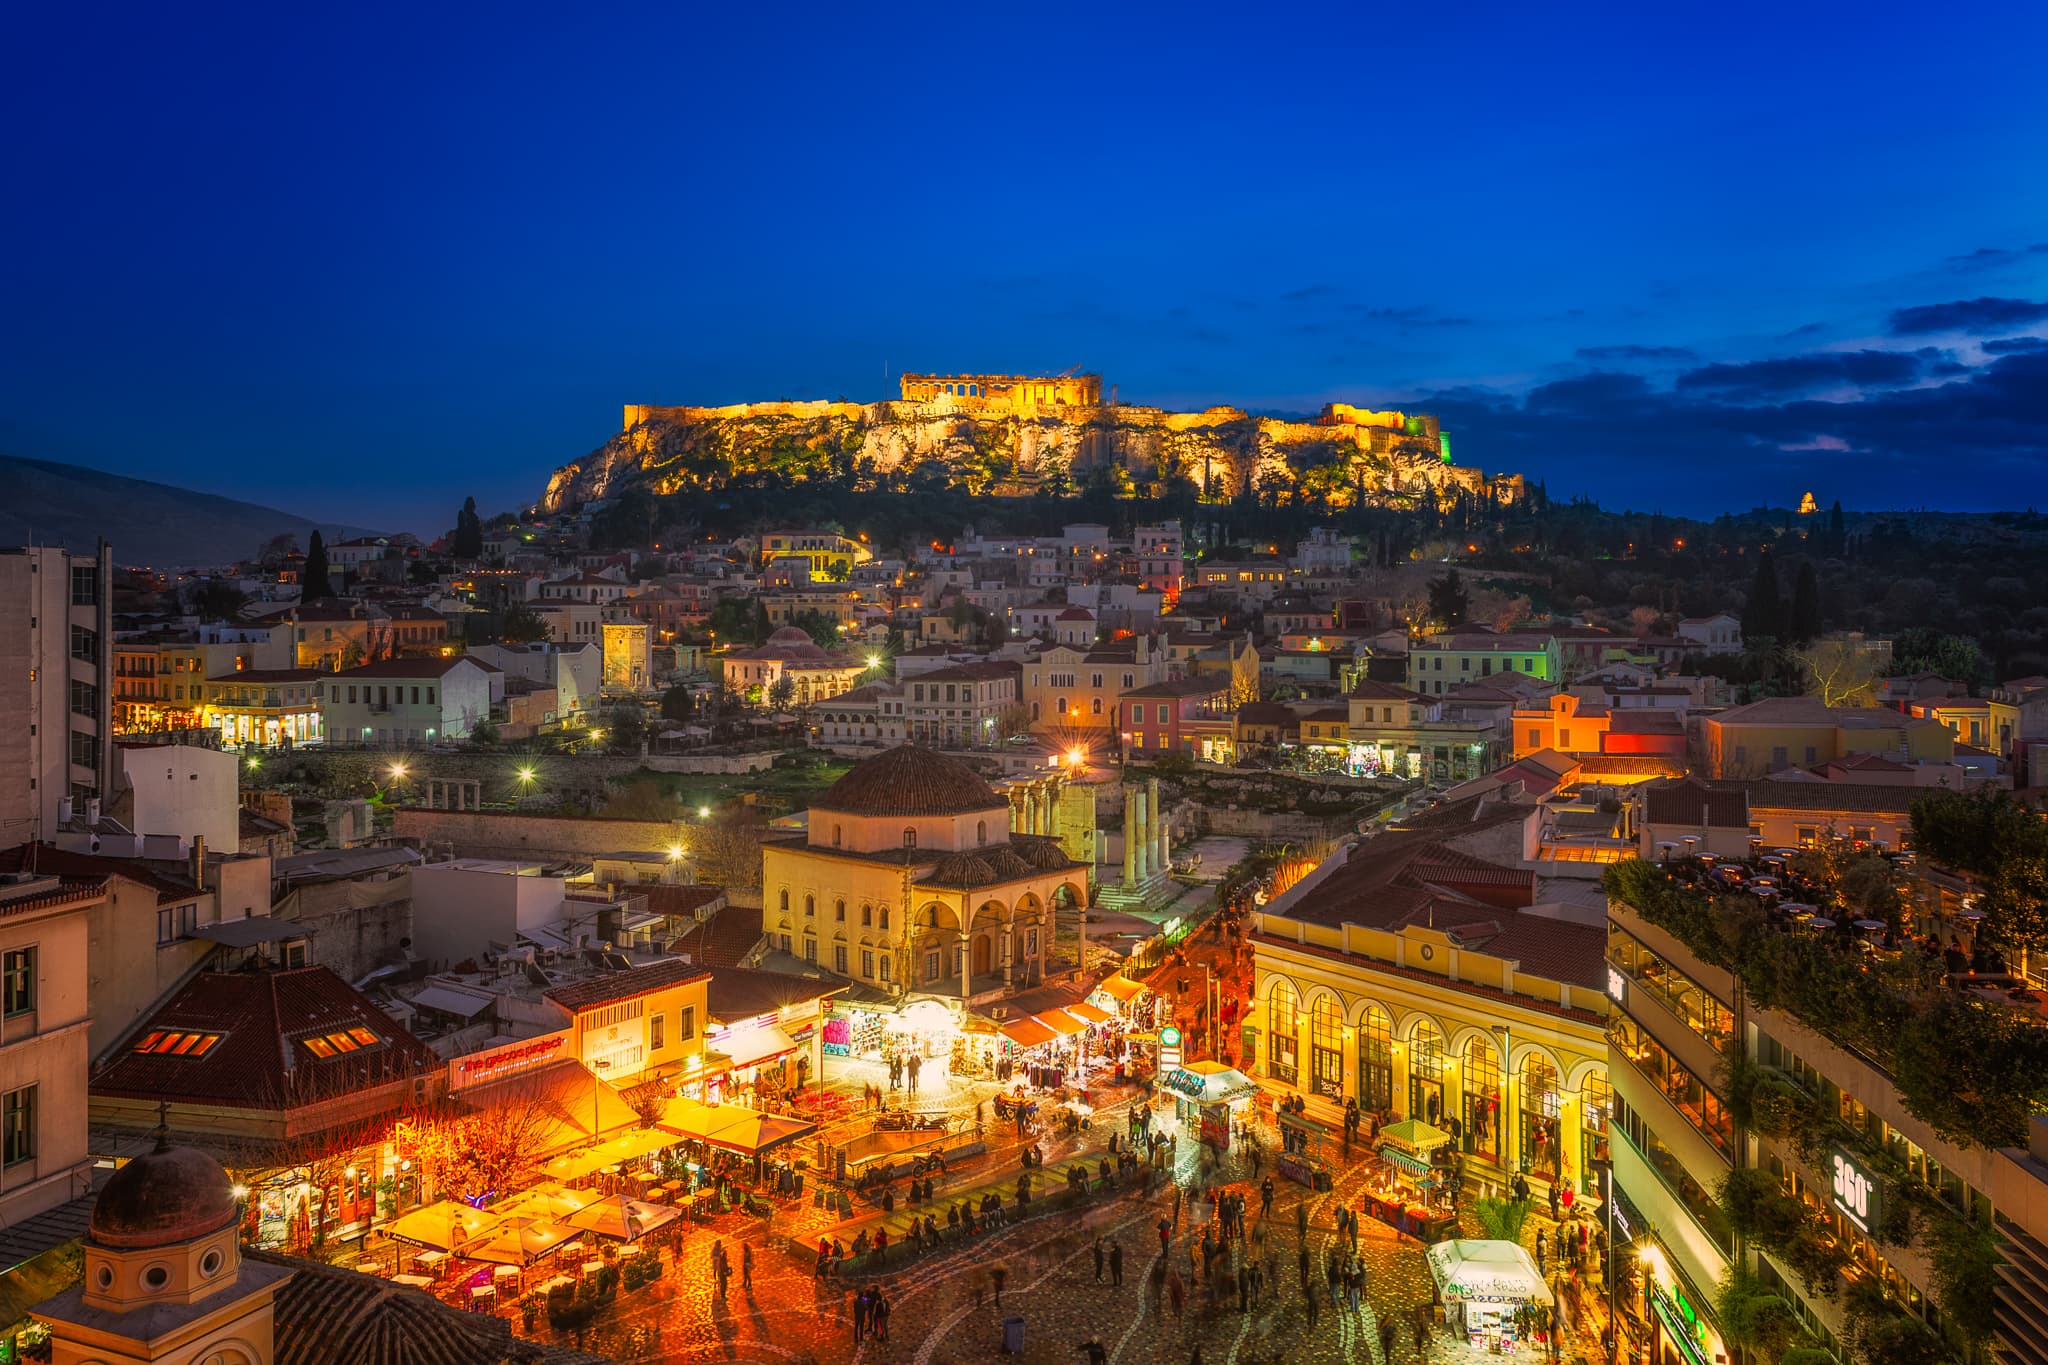 The Monastiraki Square at night | Athens, Greece